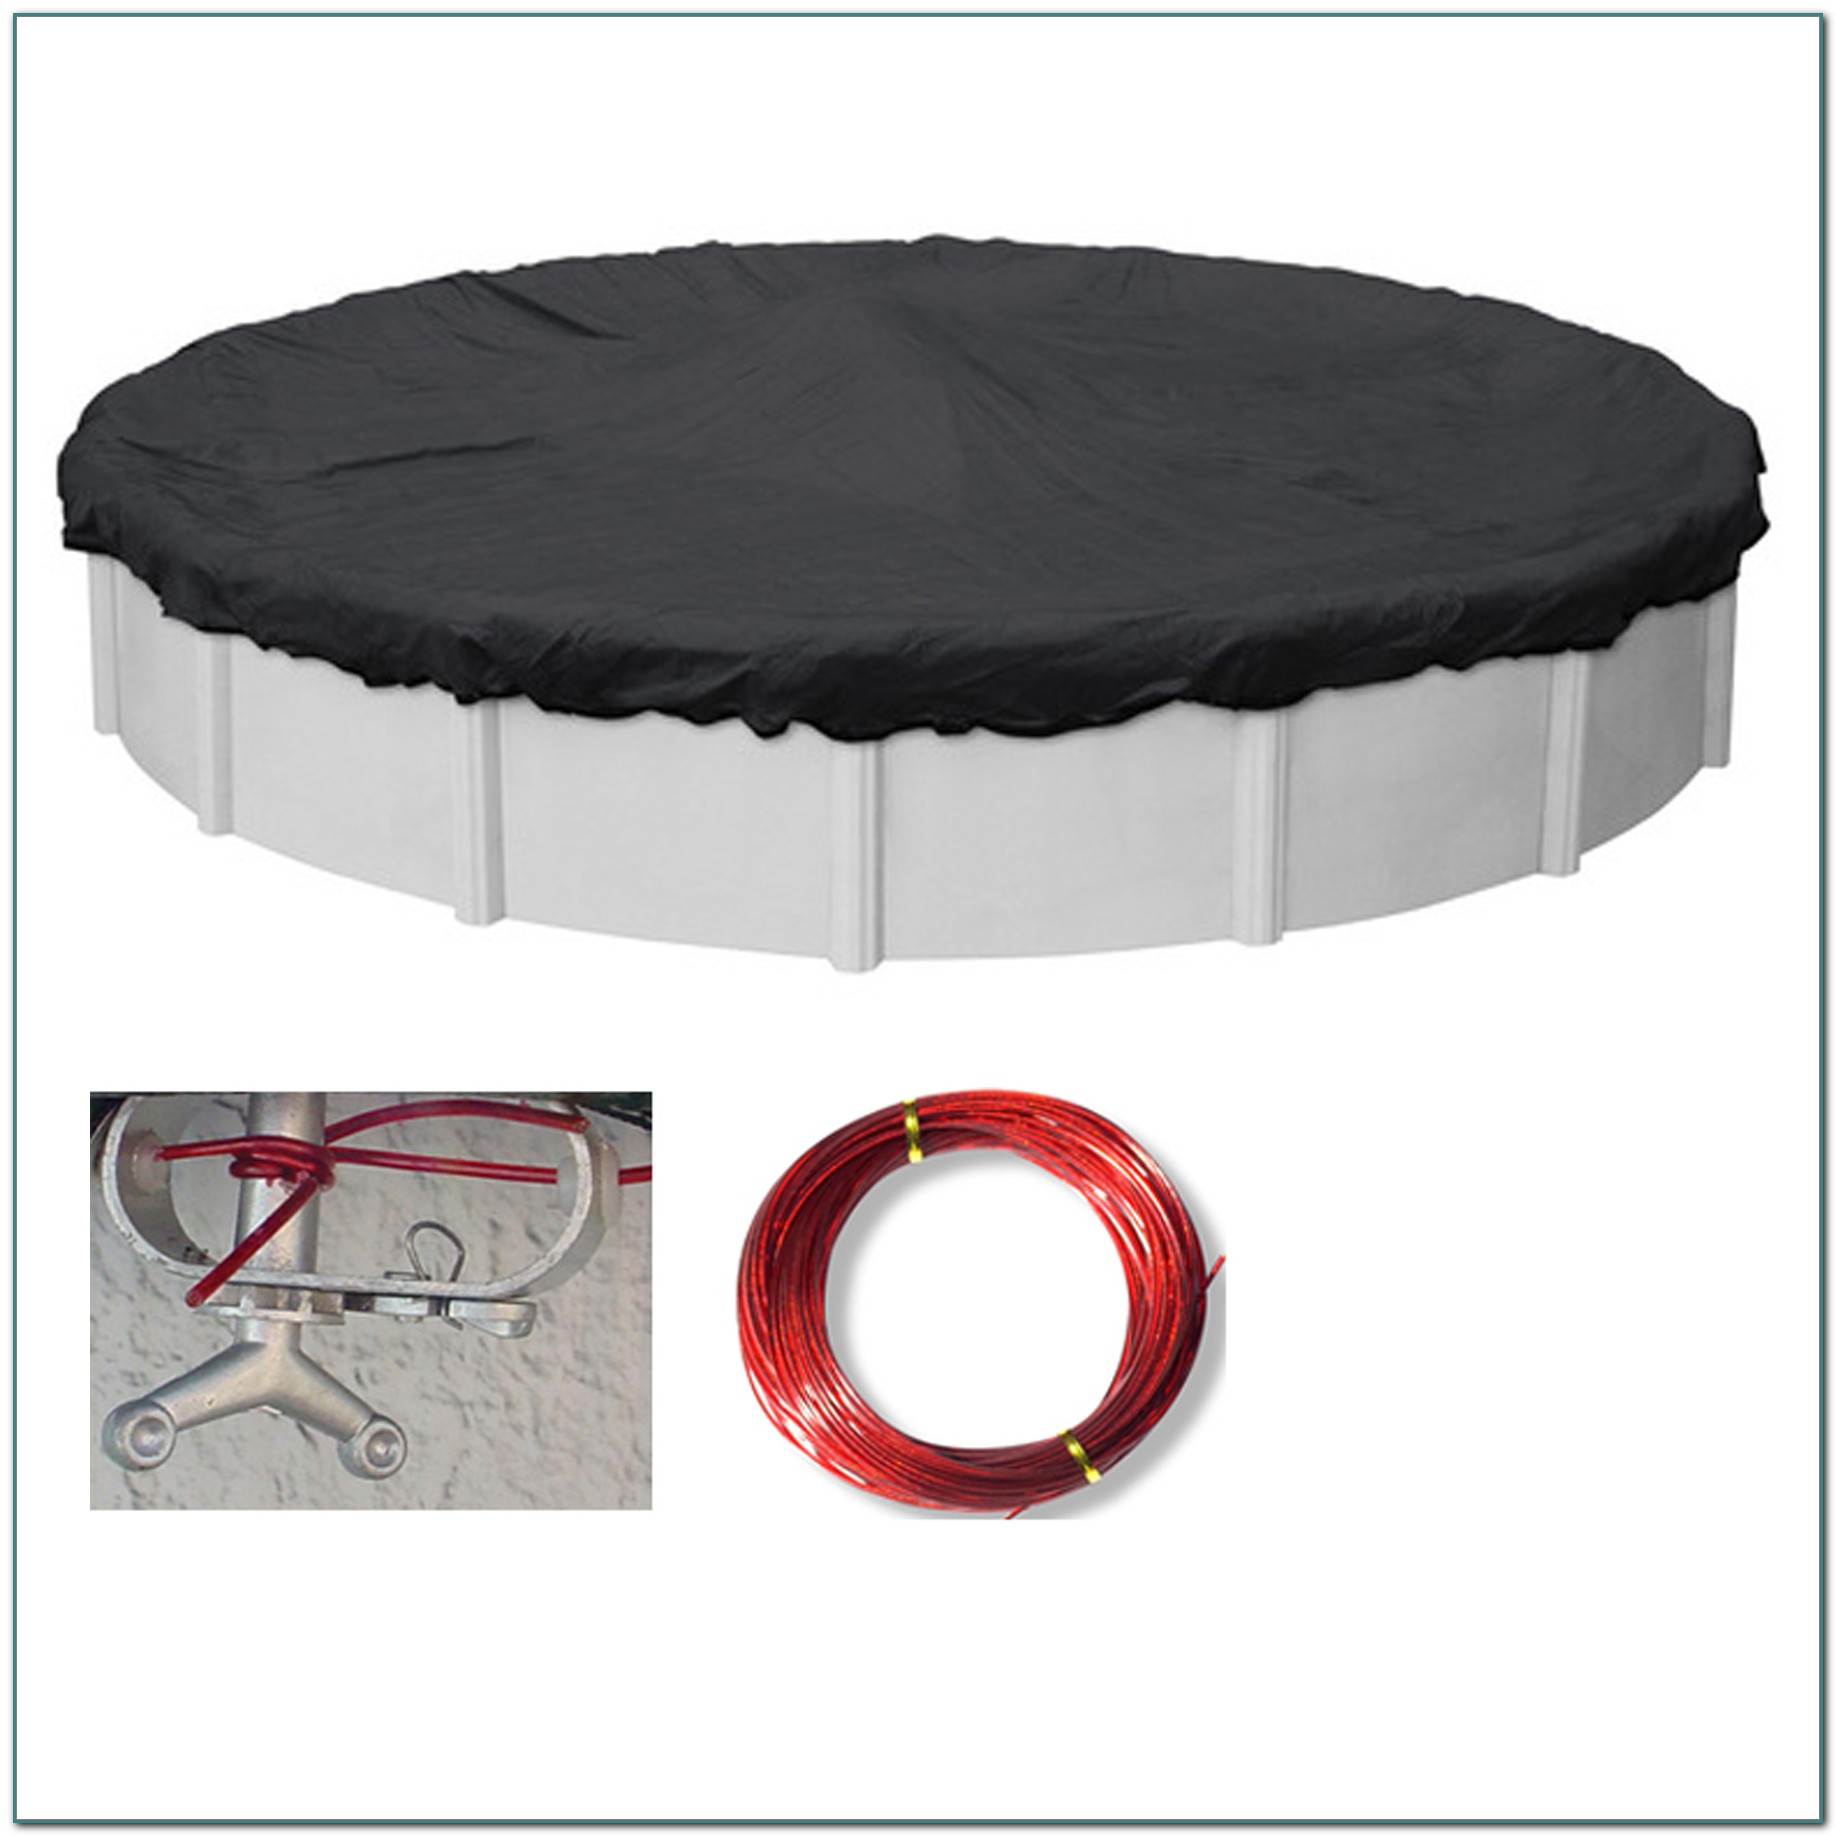 24 Above Ground Pool Mesh Cover